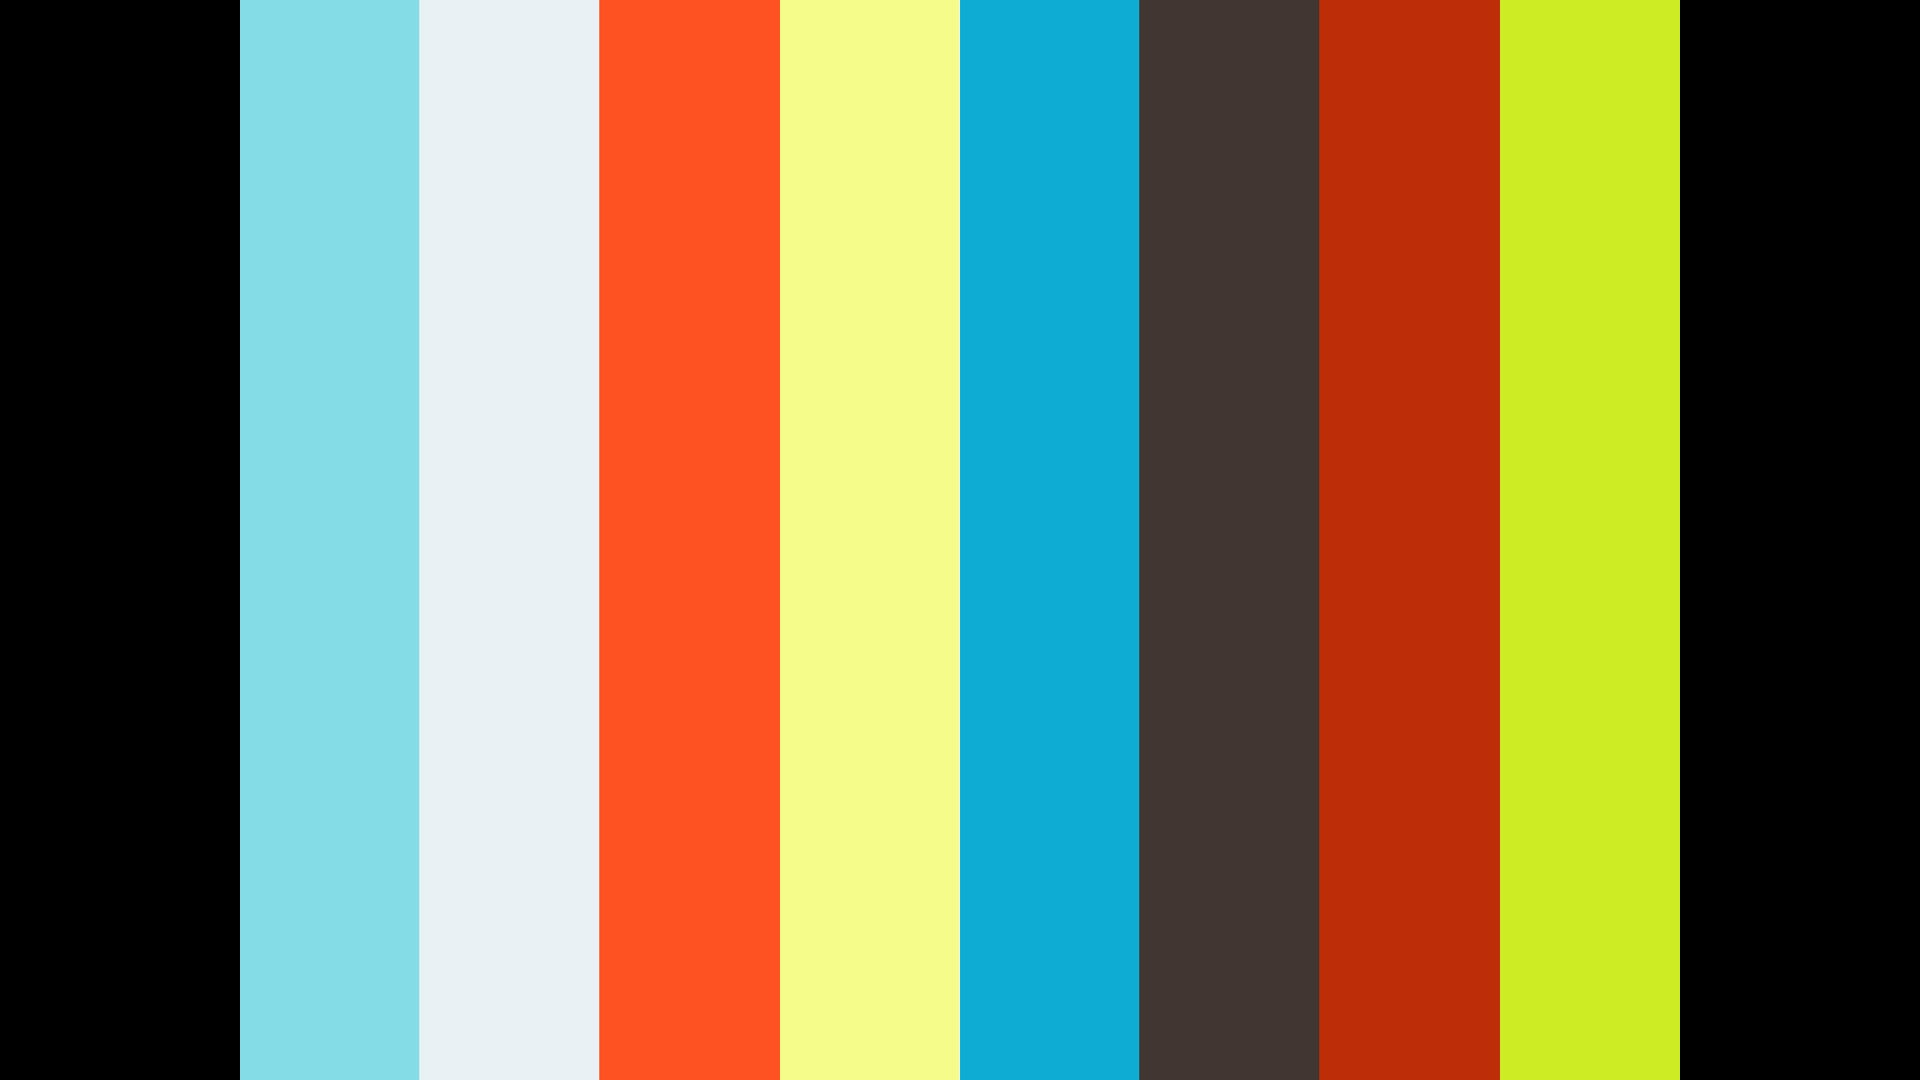 IN3 - Towards a modular planning strategy for urban planning